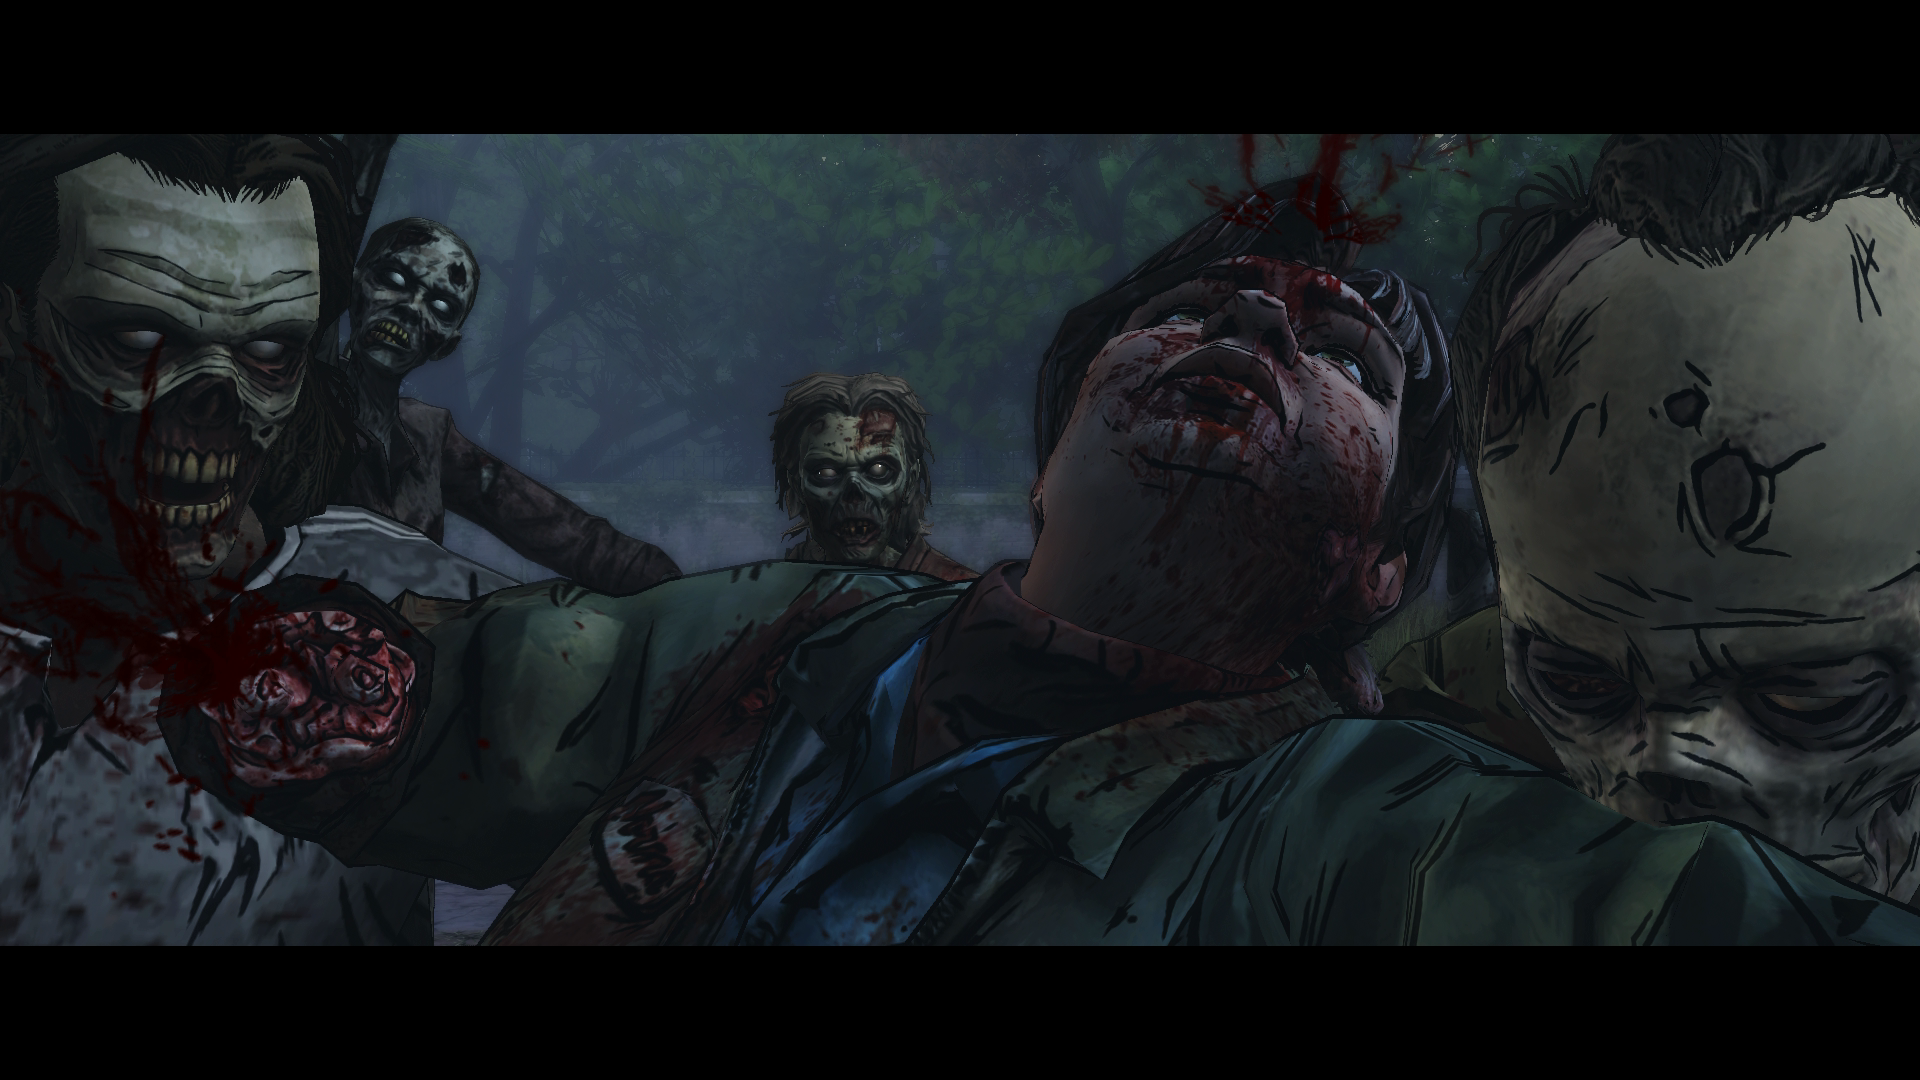 Xbox One The Walking Dead: Michonne: Episode 3 - What We Deserve